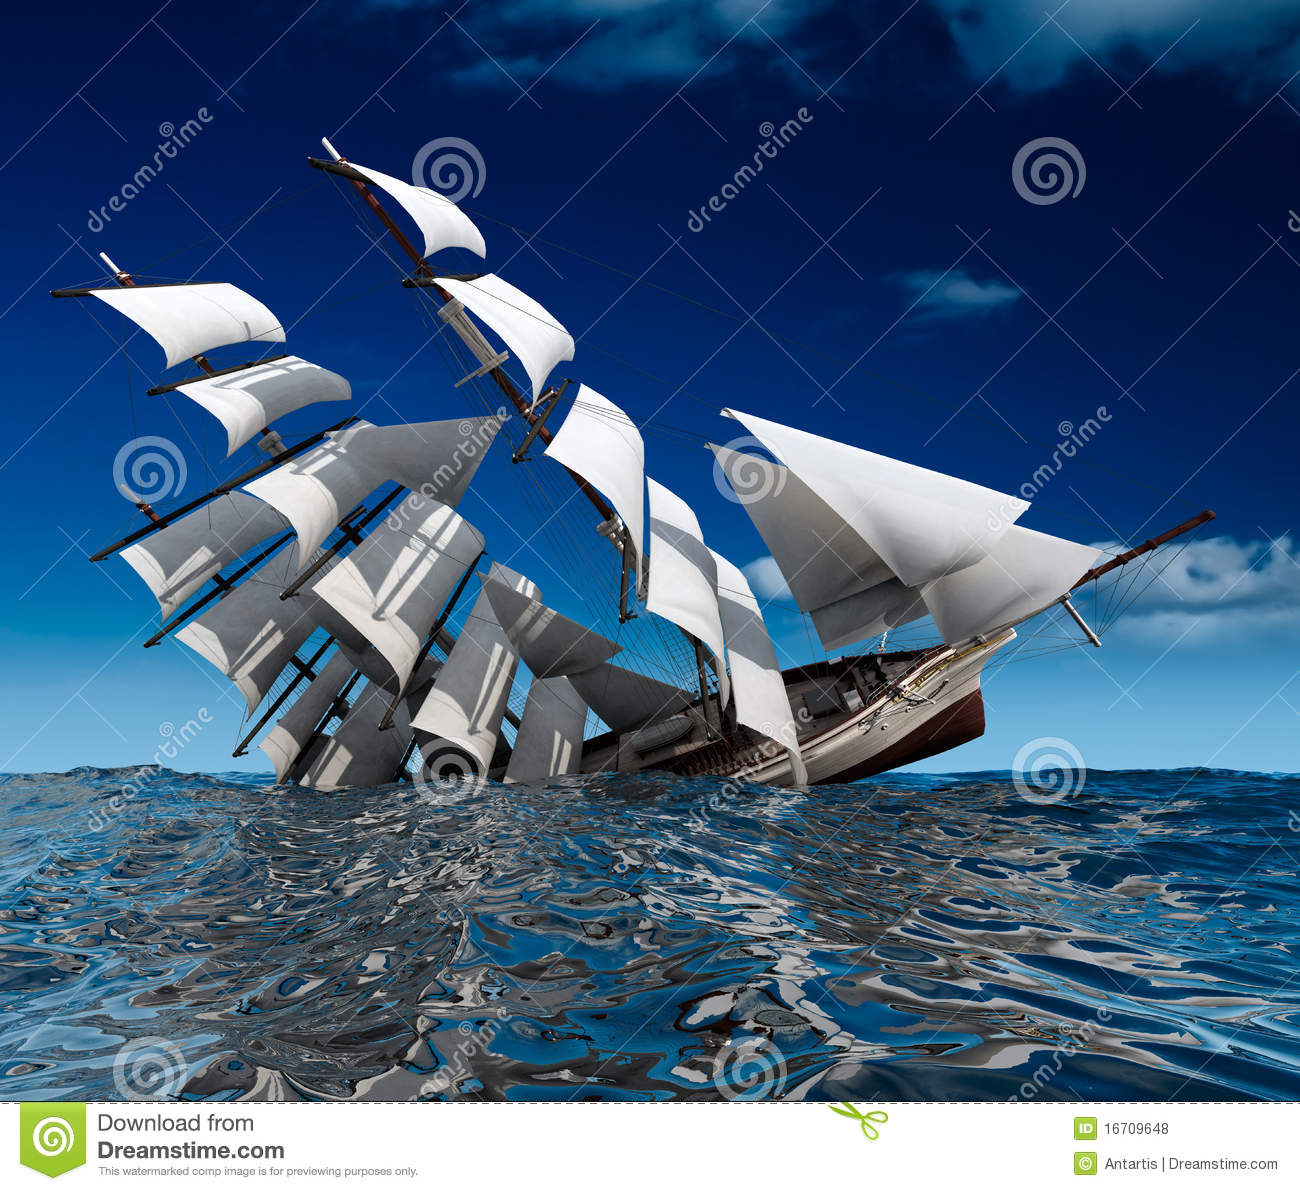 Sailing Ship Sinking Royalty Free Stock Photos